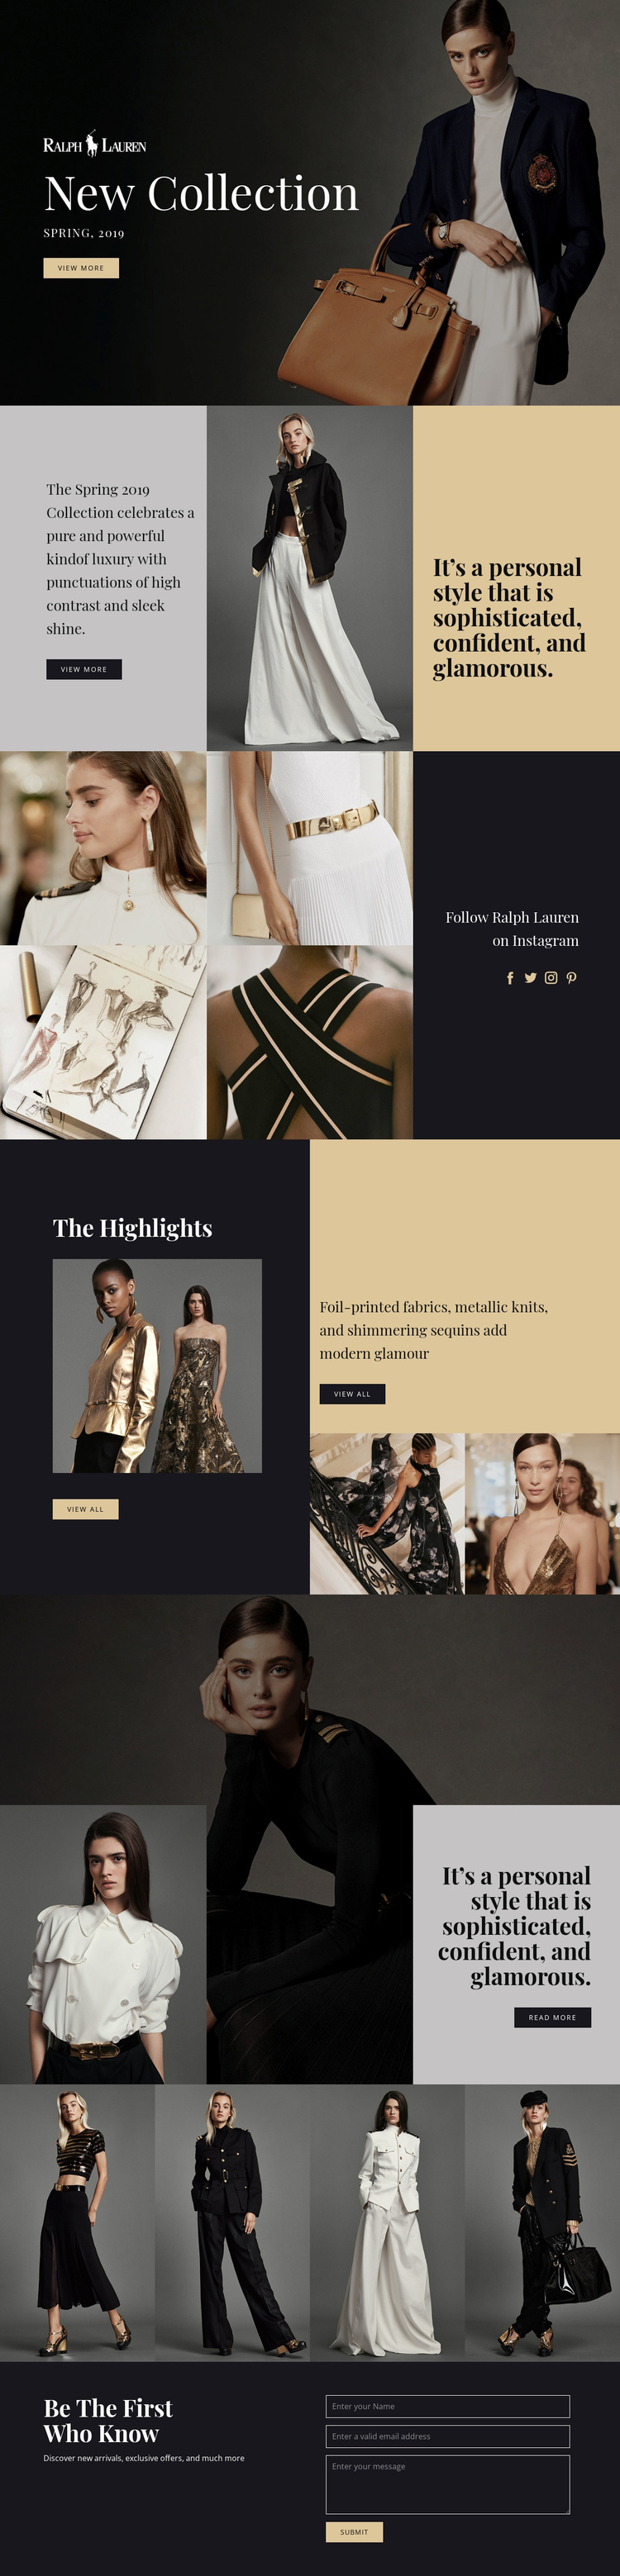 Ralph Lauren fashion Website Builder Software